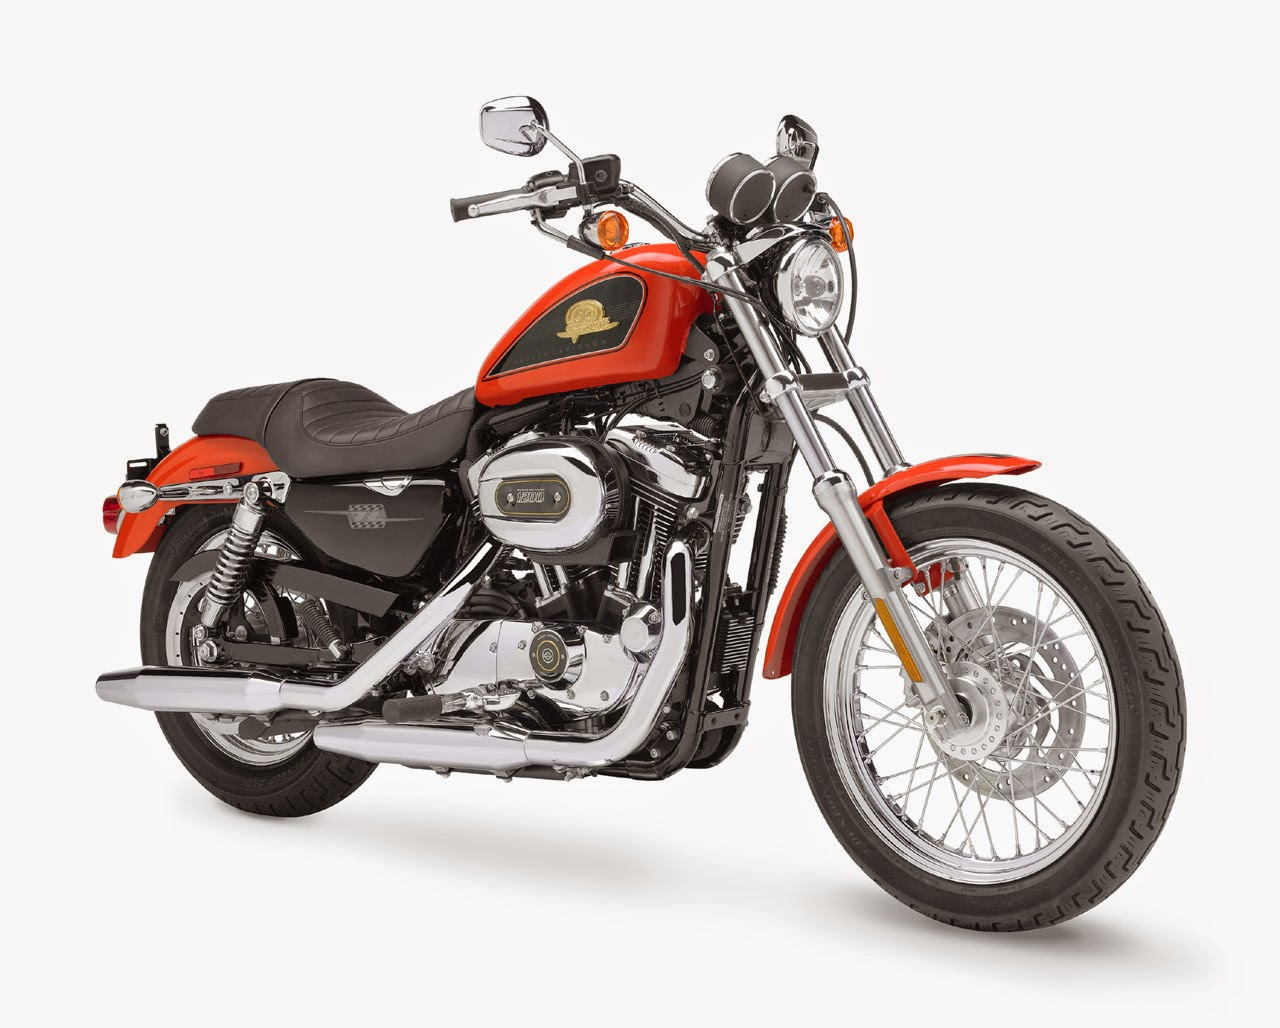 Harley-Davidson Sportster Owner's Manual 2007 Download for Models: XL 883,  XL 883C, XL 883L, XL 883R, XL 1200C, XL 1200R, XL 1200N, XL 1200L, XL 50